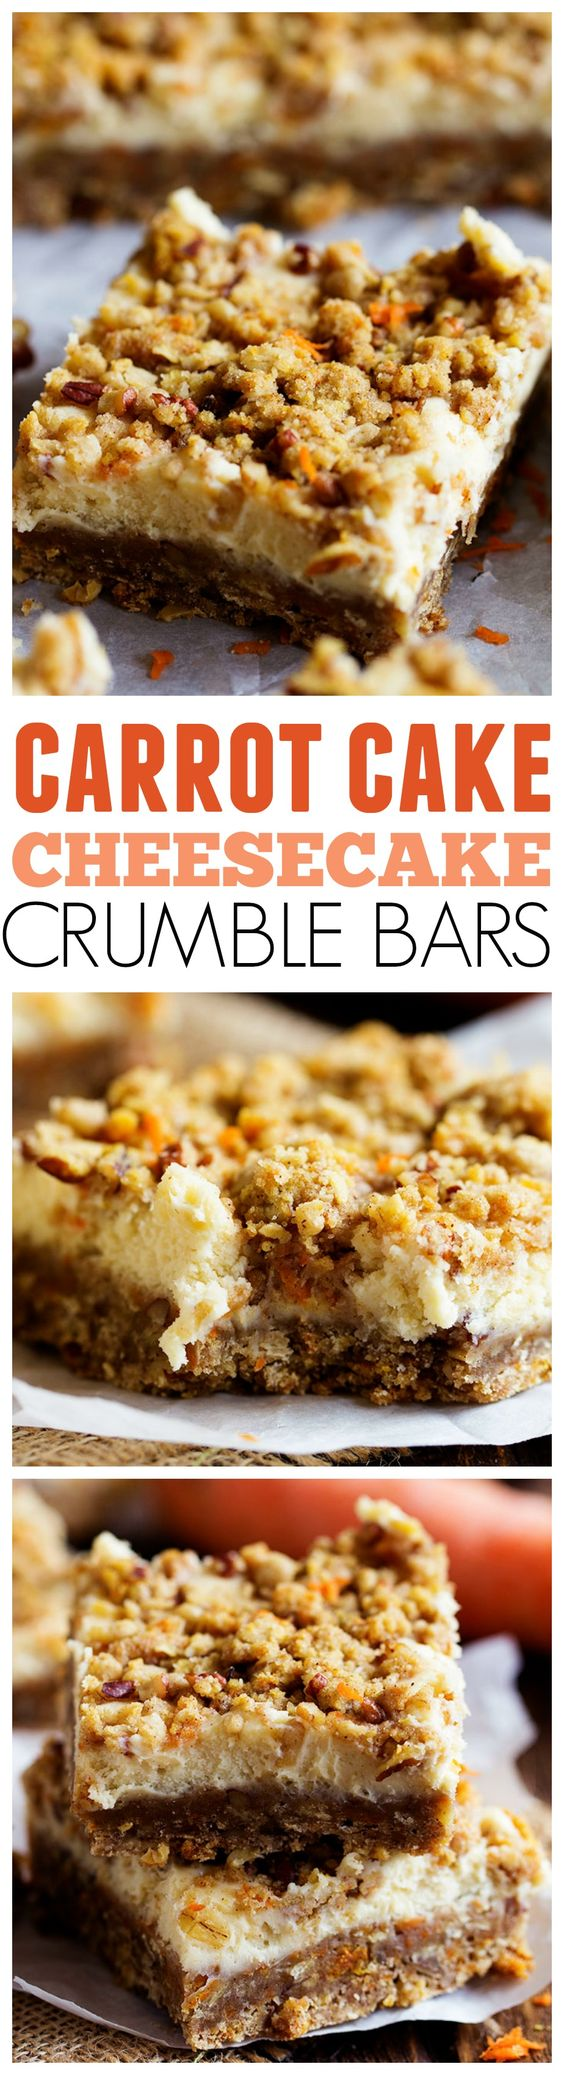 Carrot Cake Cheesecake Crumble Bars Dessert Recipe via The Recipe Critic - Amazing Carrot Cake Cheesecake Crumble Bars that will be one of the BEST desserts that you have! #dessertbars #cookiebars #barsrecipes #dessertforacrowd #partydesserts #christmasdesserts #holidaydesserts #onepandesserts